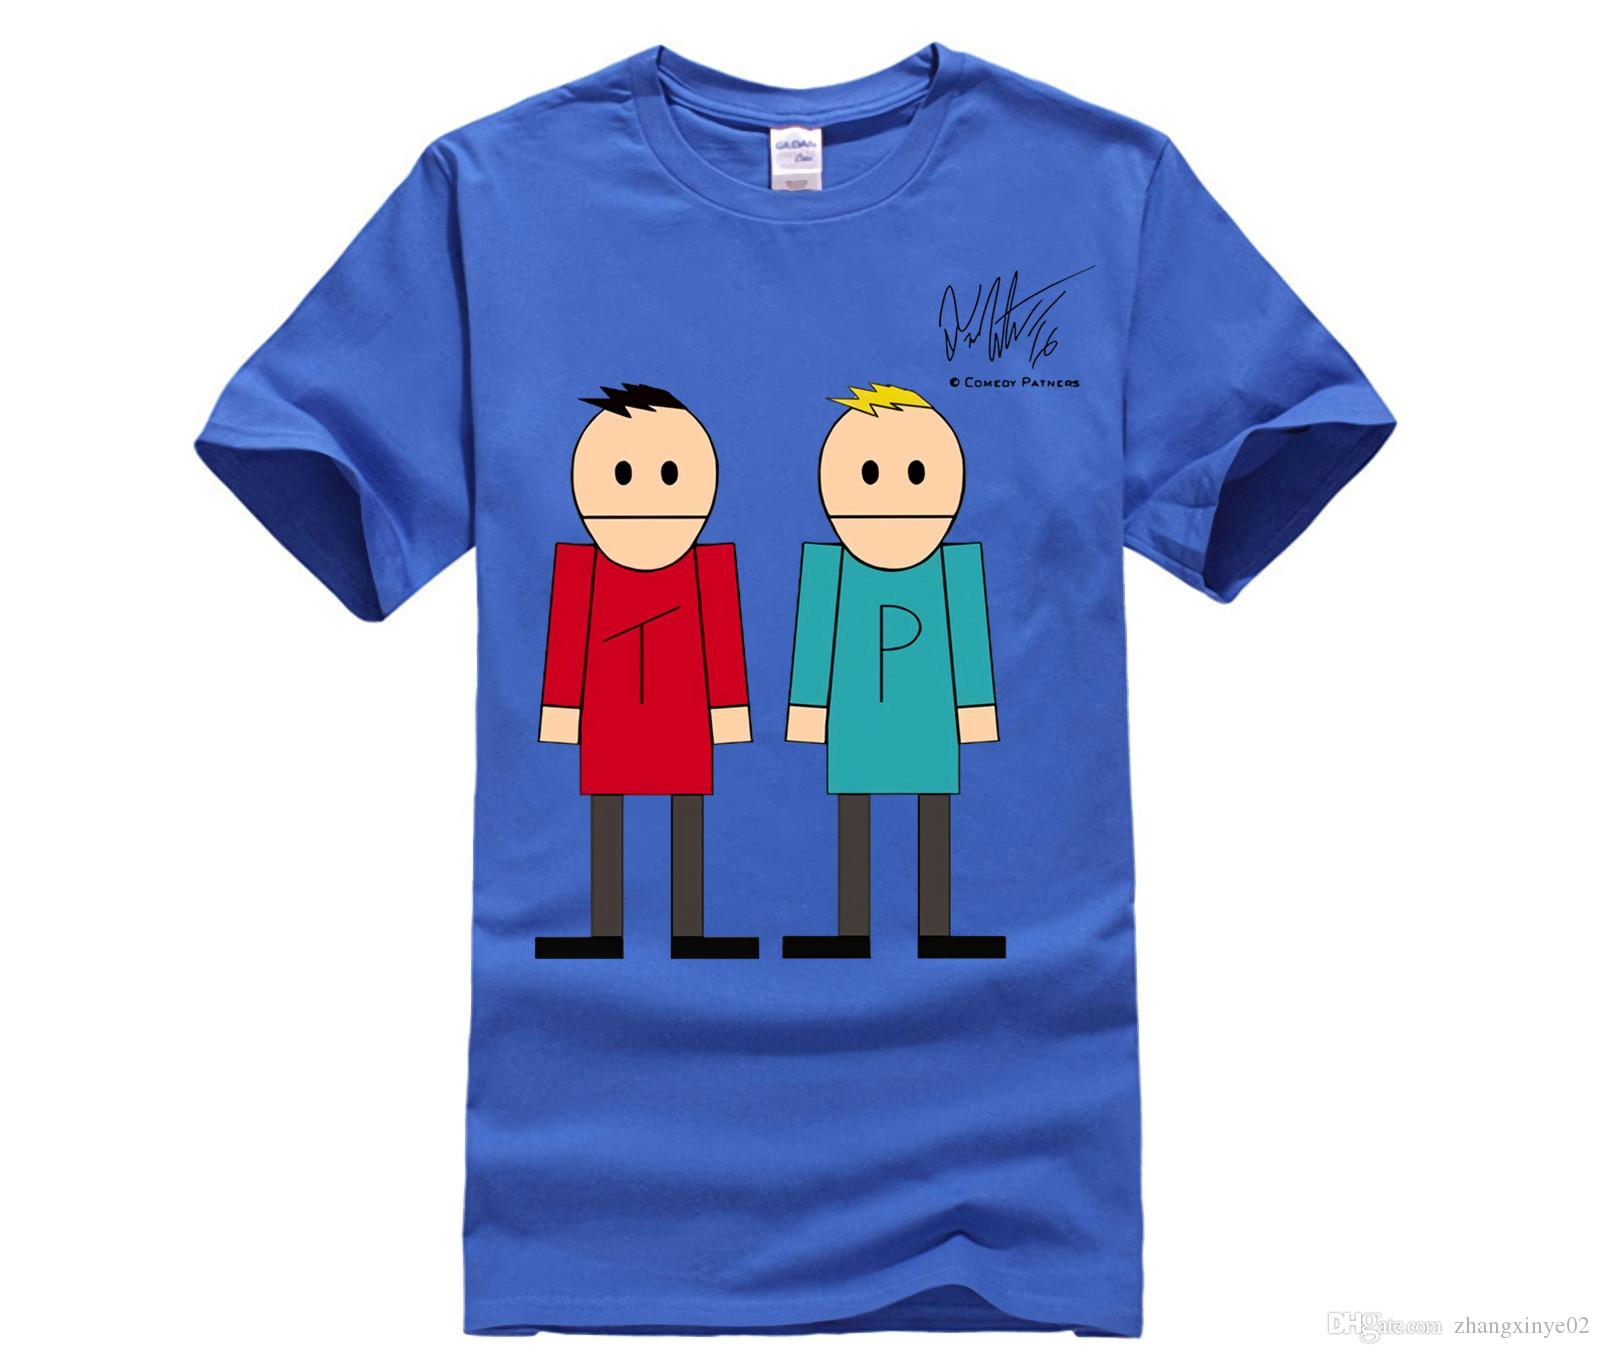 Unisex T-Shirt South Park Terrance And Phillip Shirts For Men Women Mothers Day T Shirts